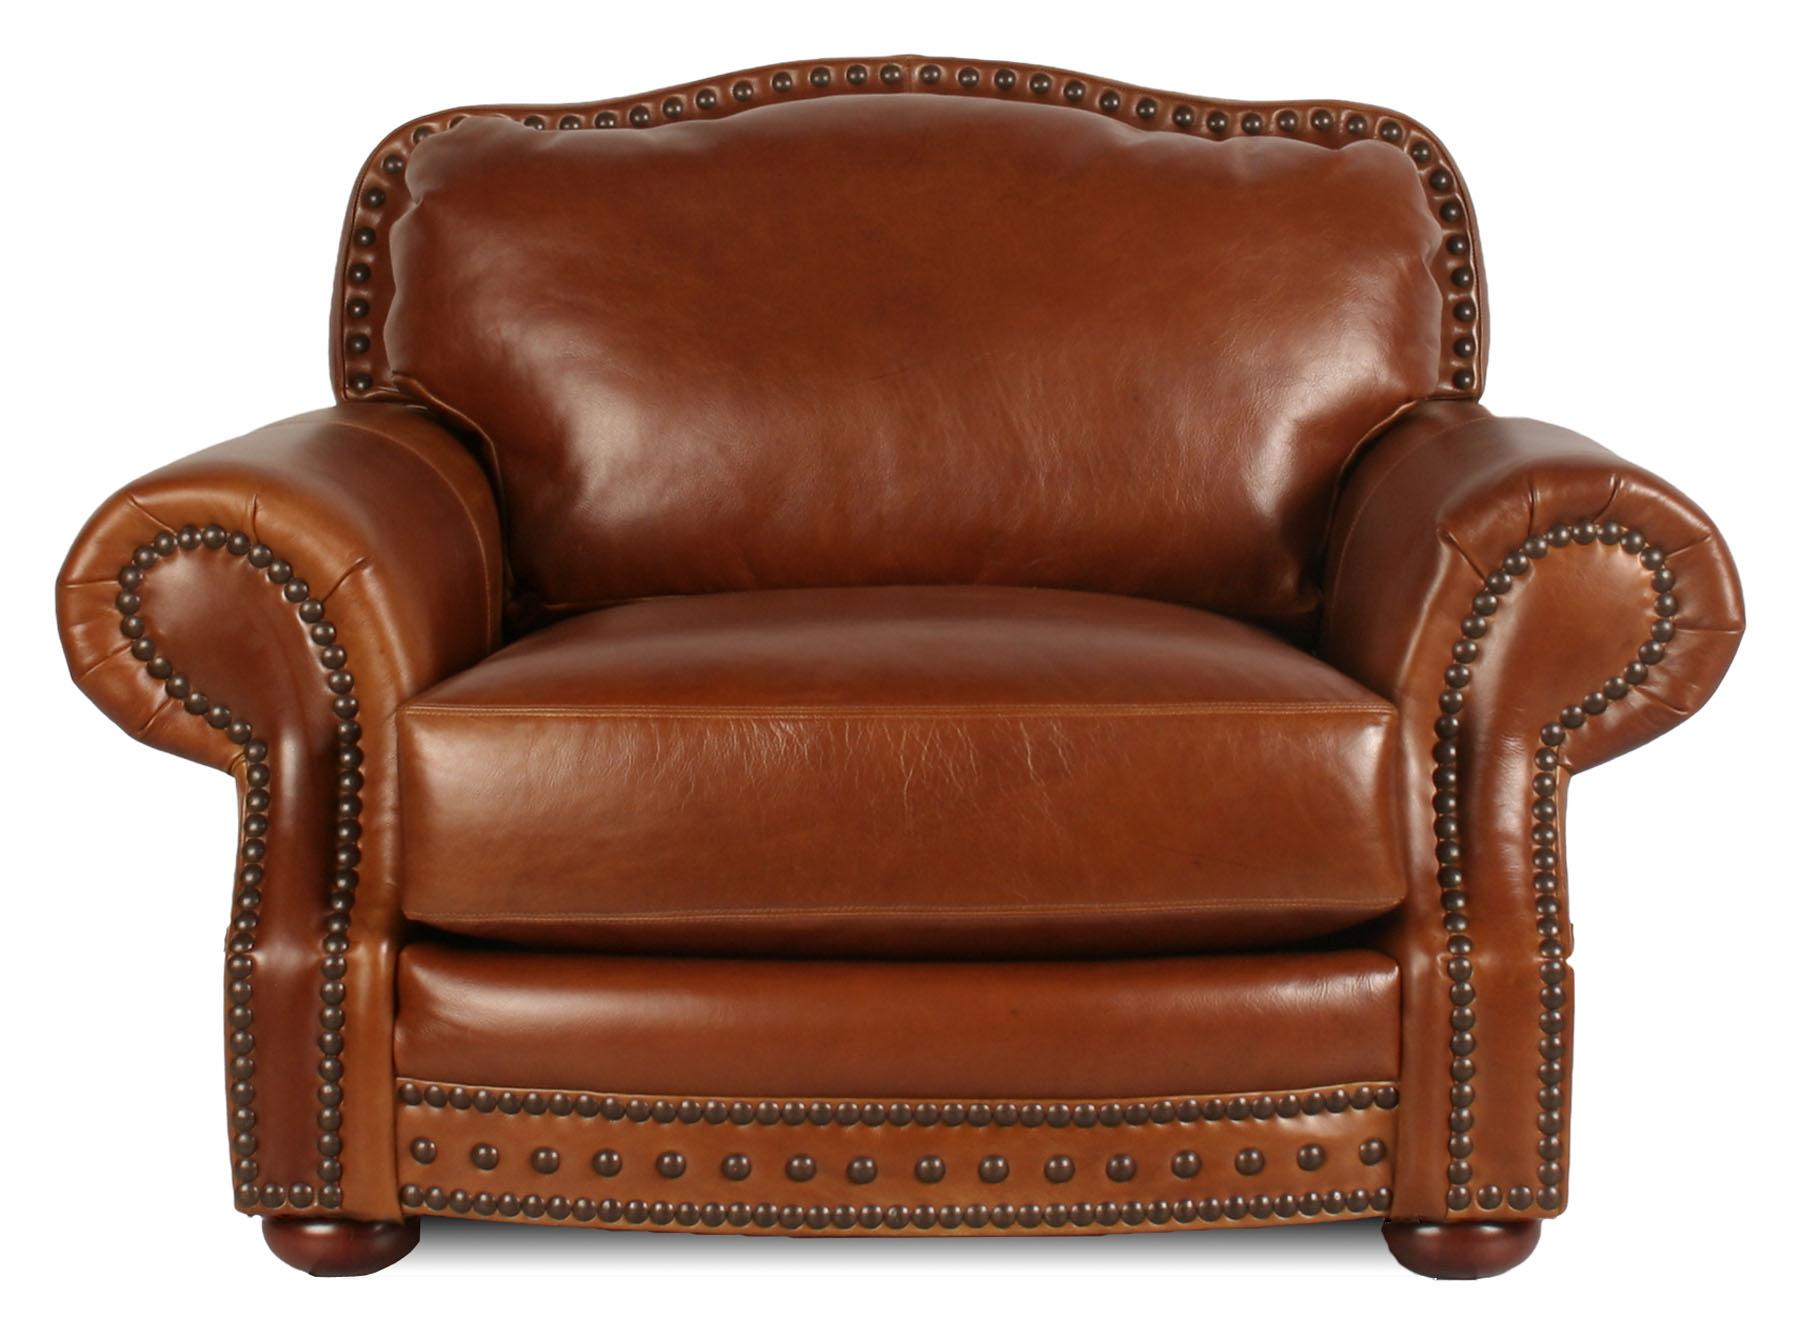 Infinity Chair Infinity Deep Leather Furniture